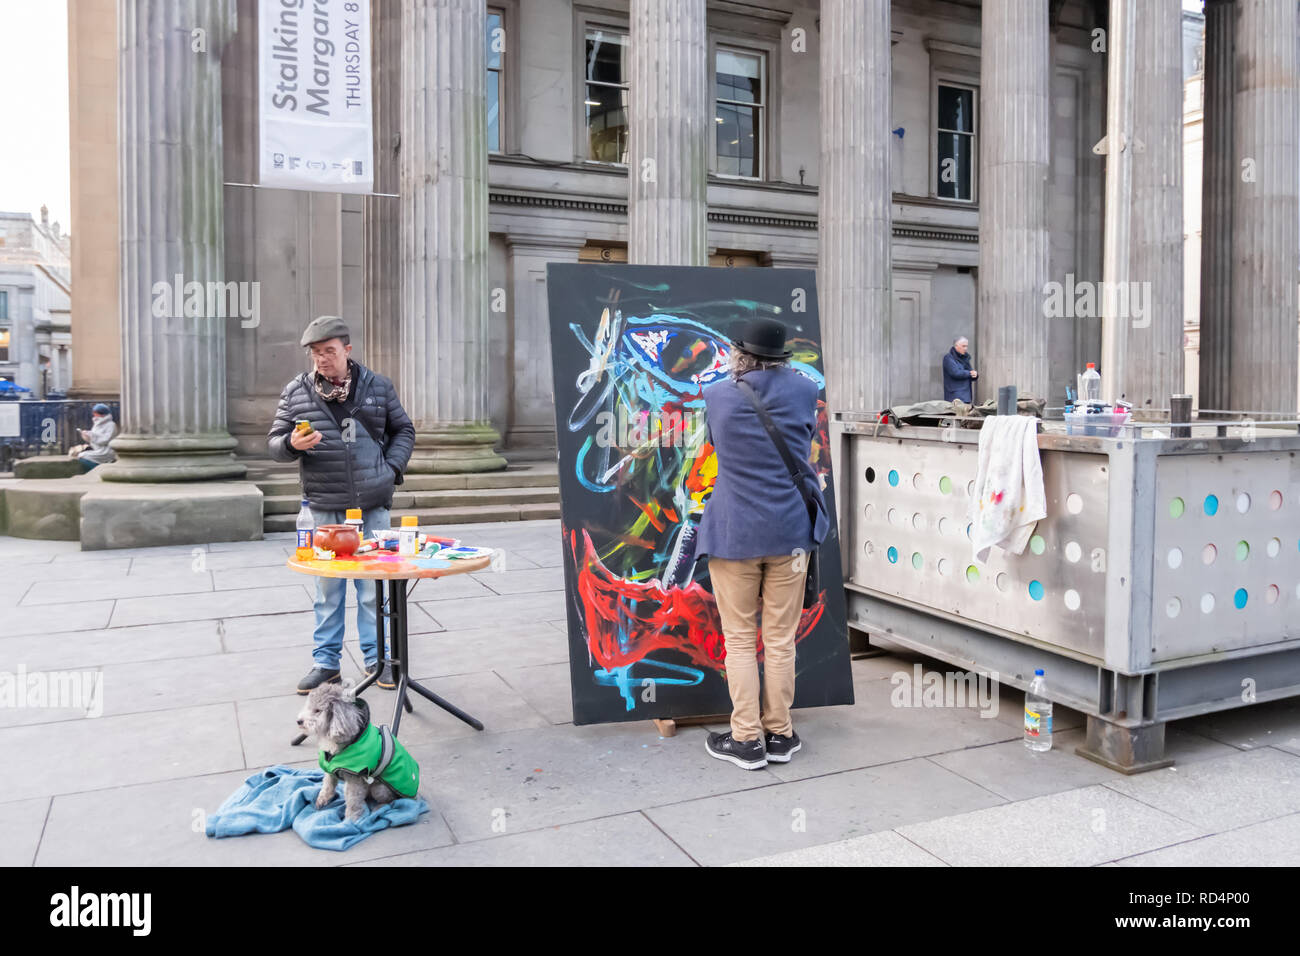 Glasgow, Scotland, UK. 17th January, 2019. The artist Frankie Patrick Robertson painting outside The Gallery Of Modern Art (GOMA). Credit: Skully/Alamy Live News - Stock Image